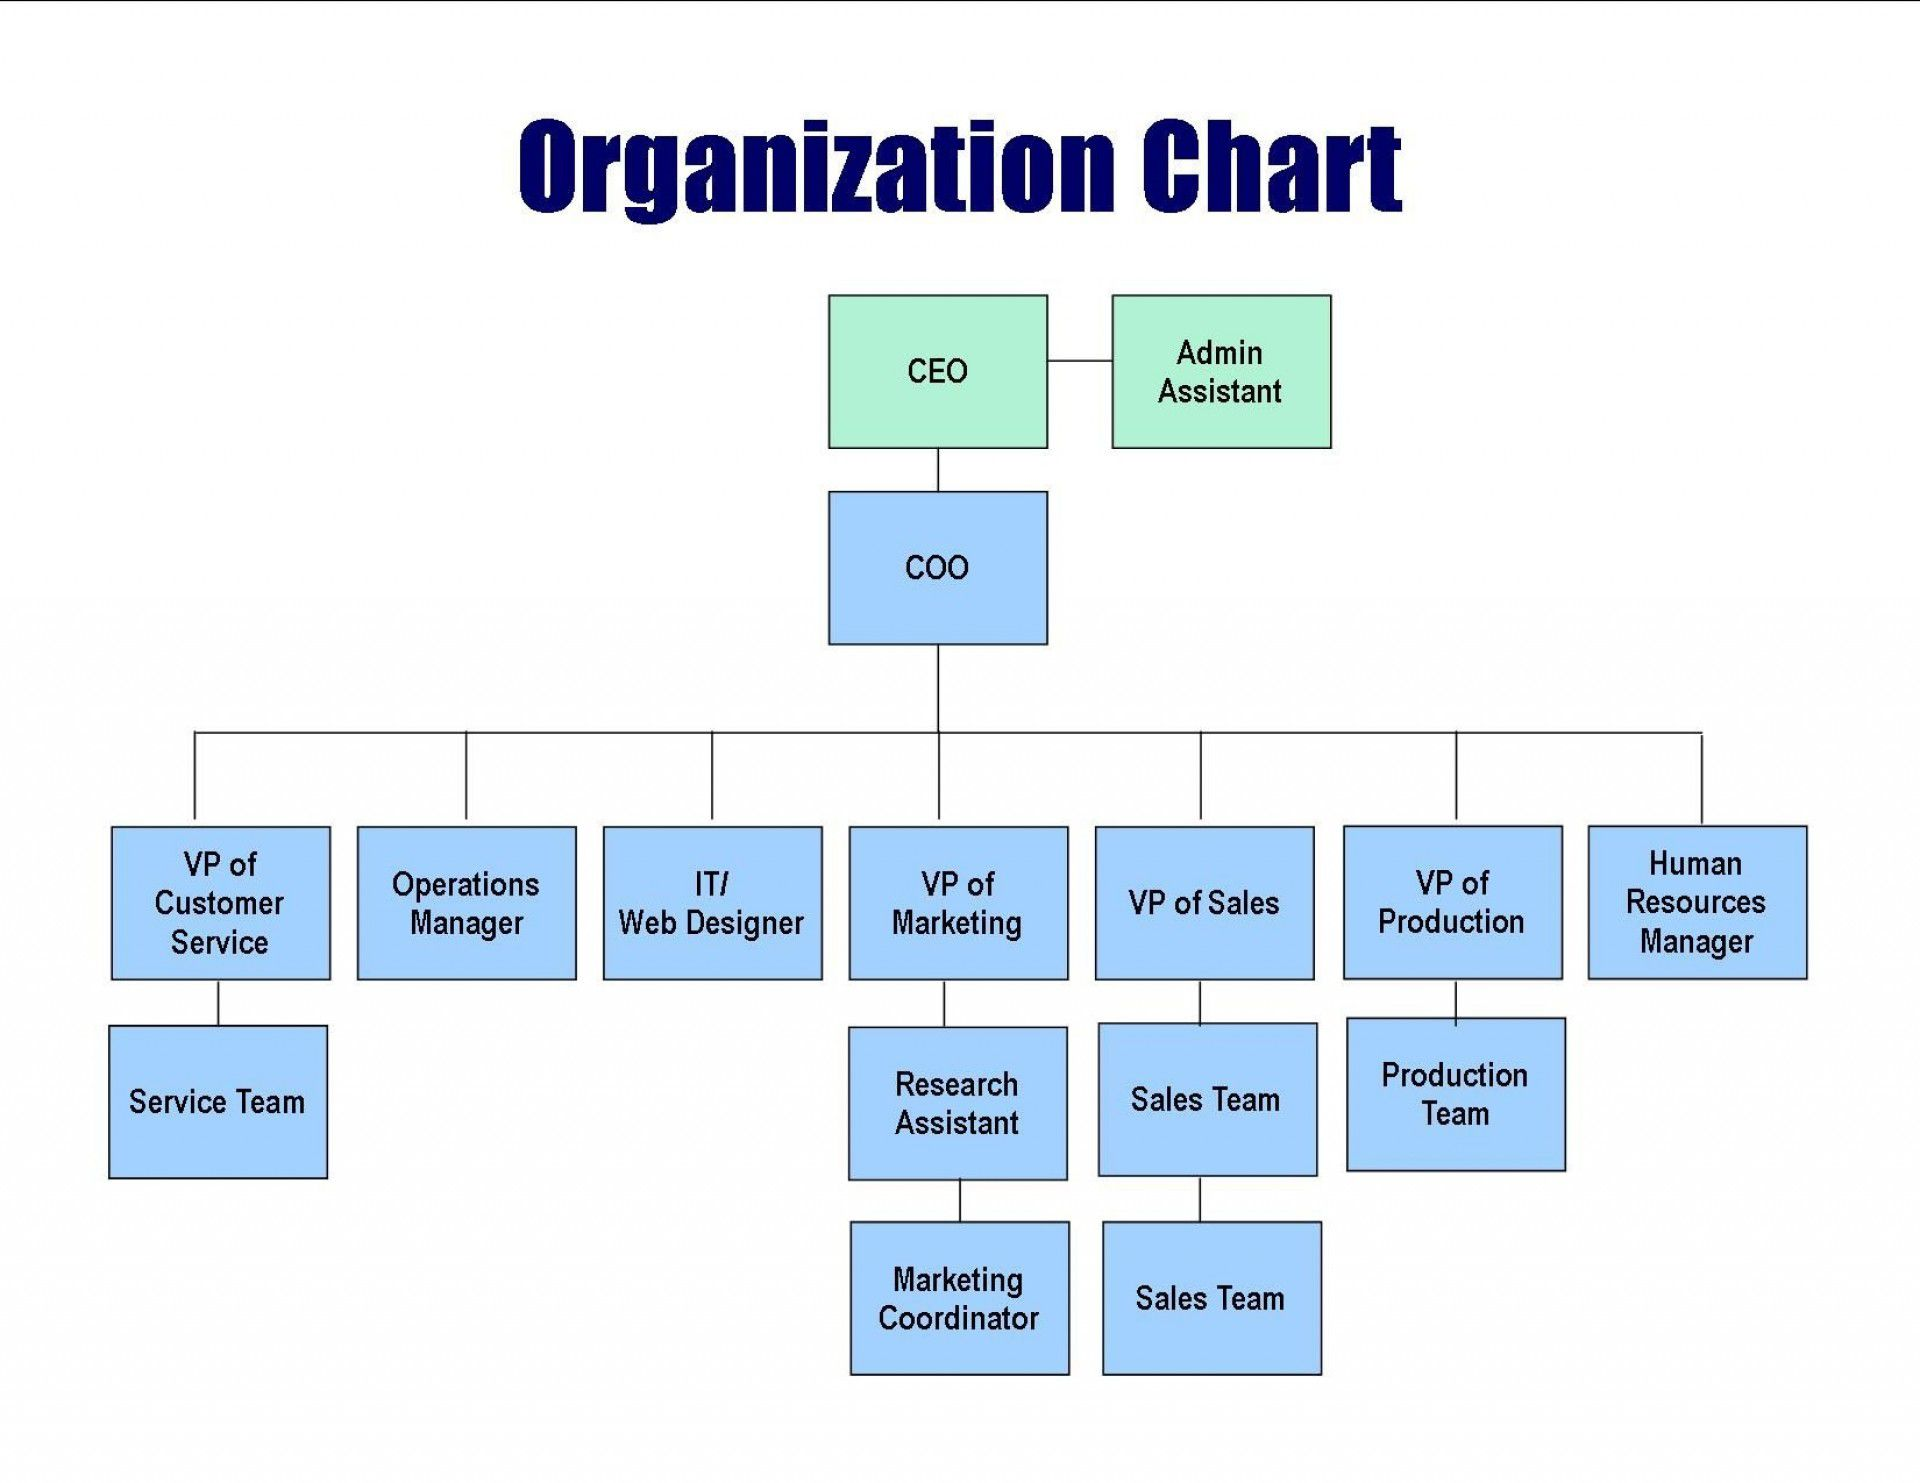 001 Unique Hierarchy Organizational Chart Template Word Sample  Hierarchical Organization -Full